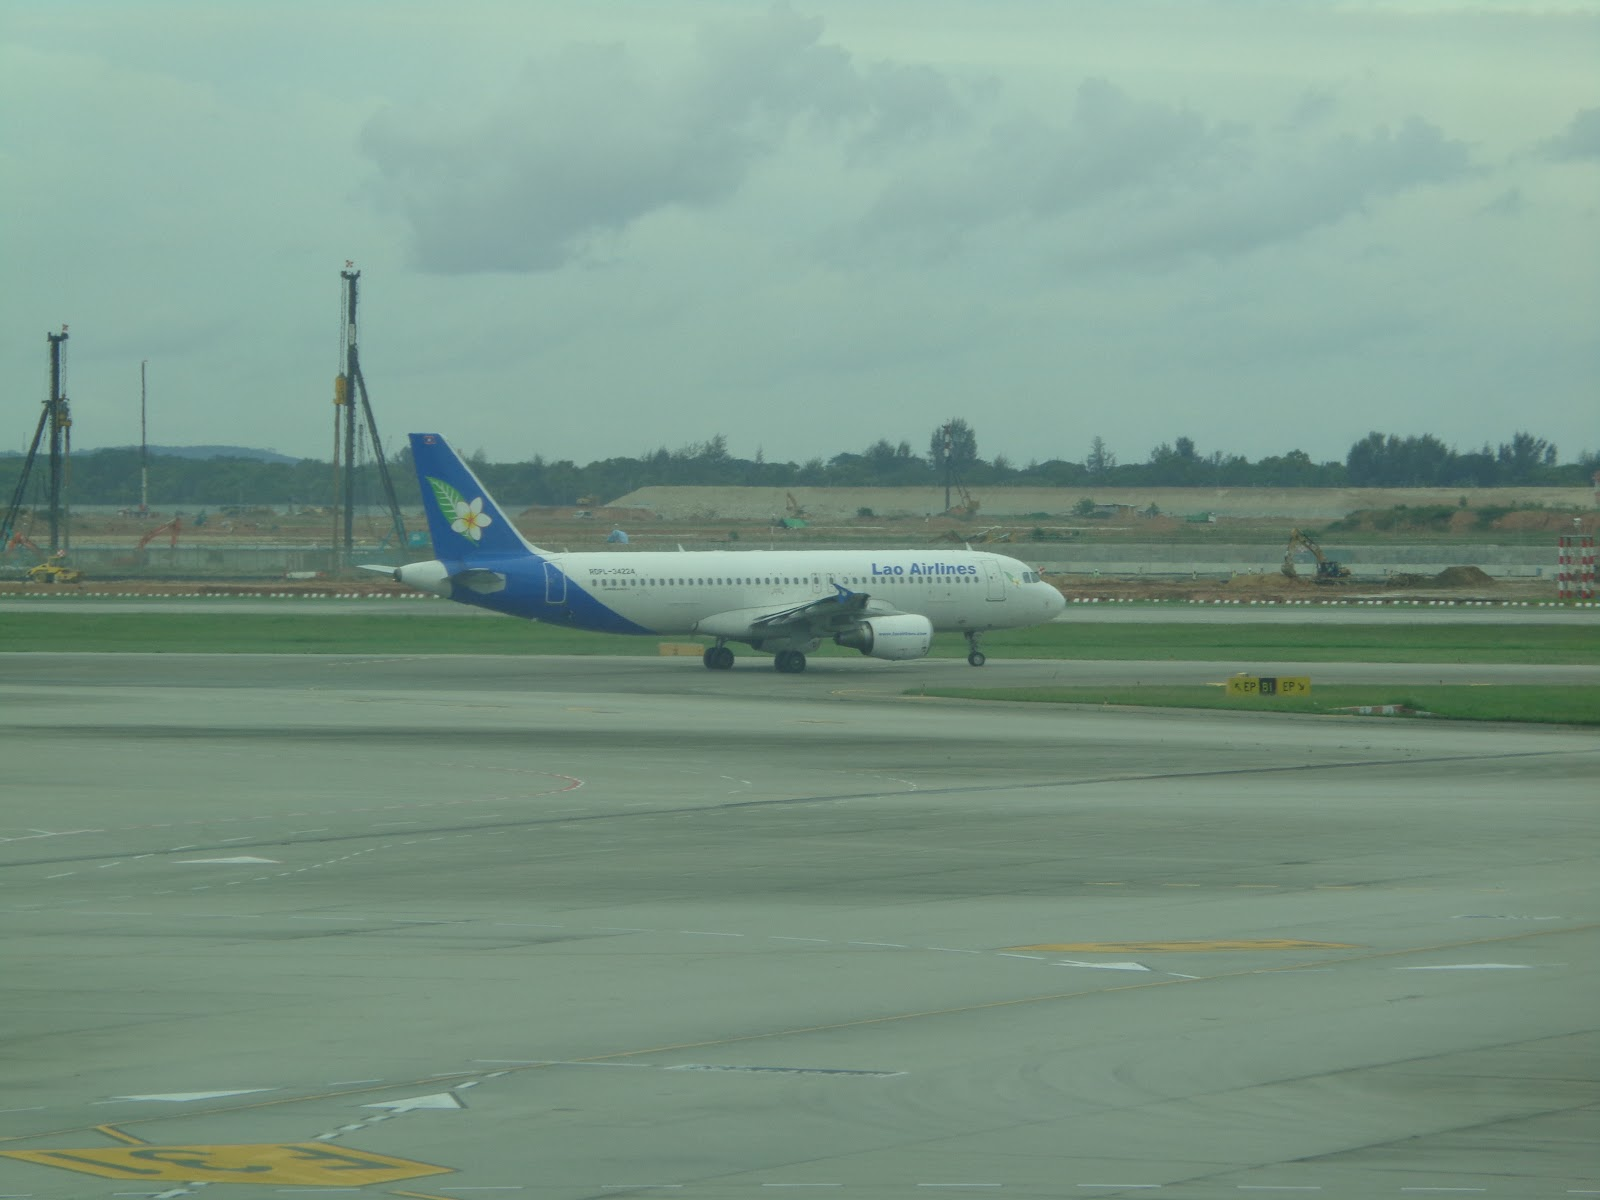 Sayacinta - Airpost: Lao Airlines ends code-sharing arrangement with